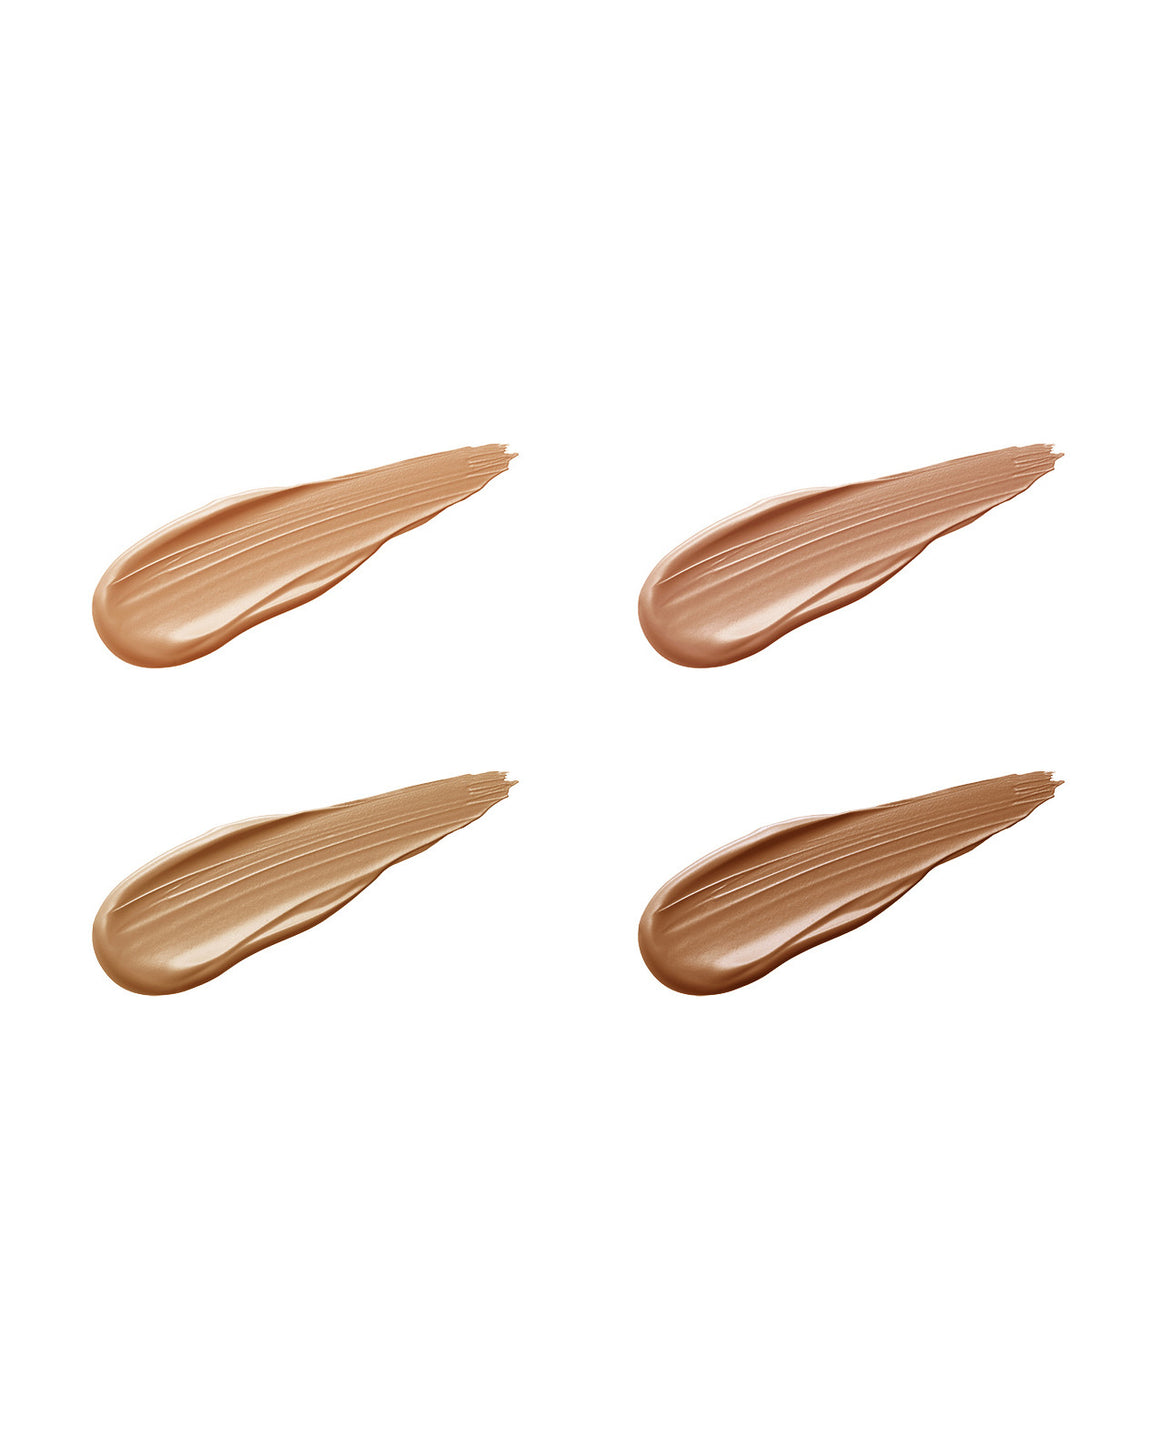 MOISTURE FOUNDATION SAMPLE SHADES (TAN)